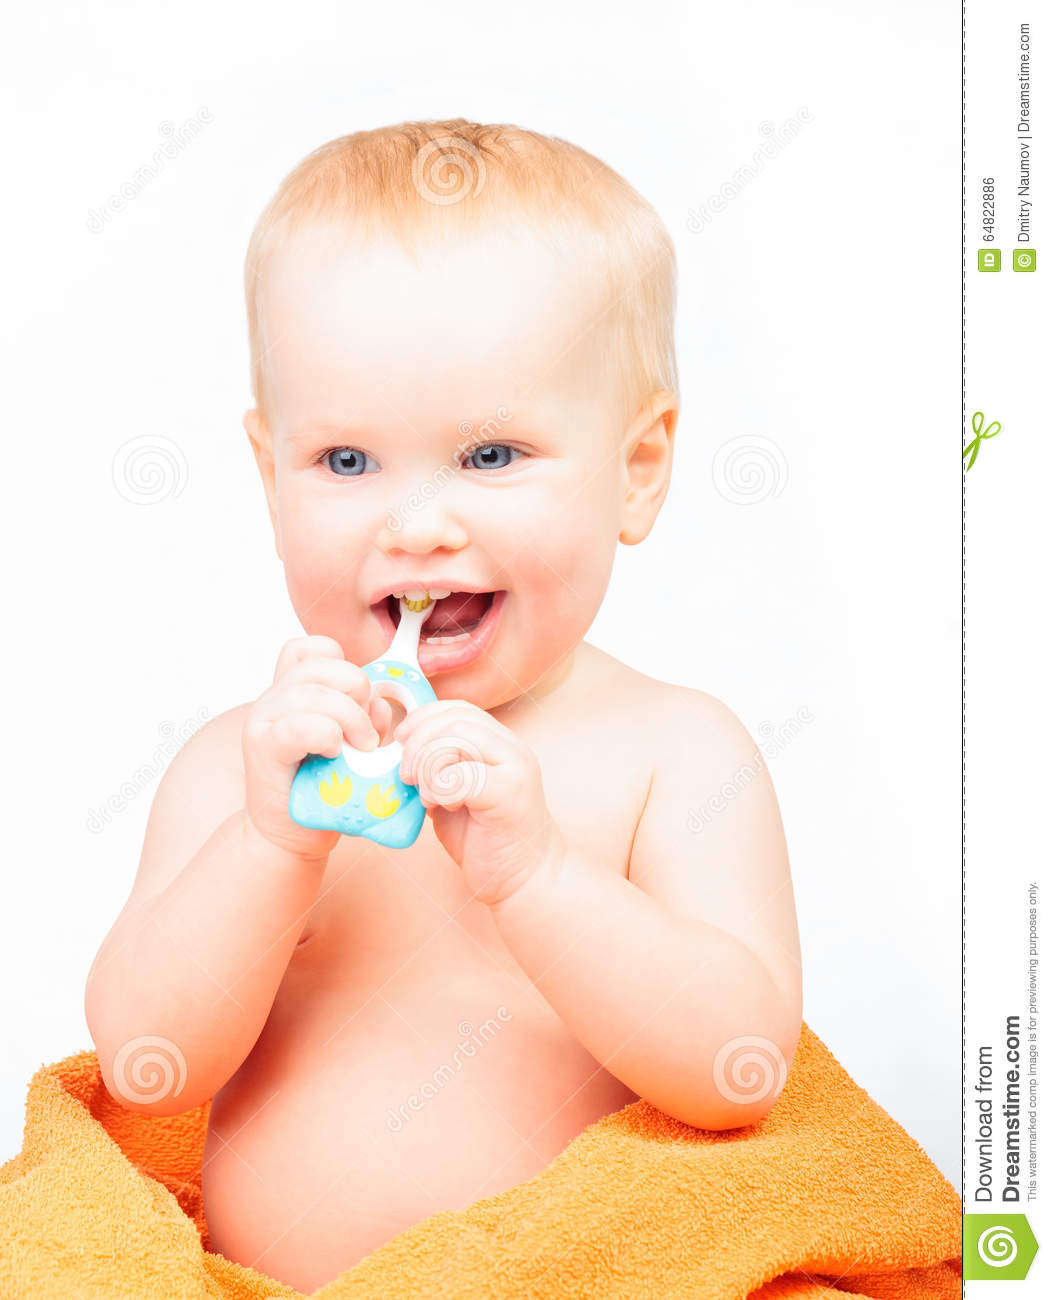 how to get baby to brush teeth